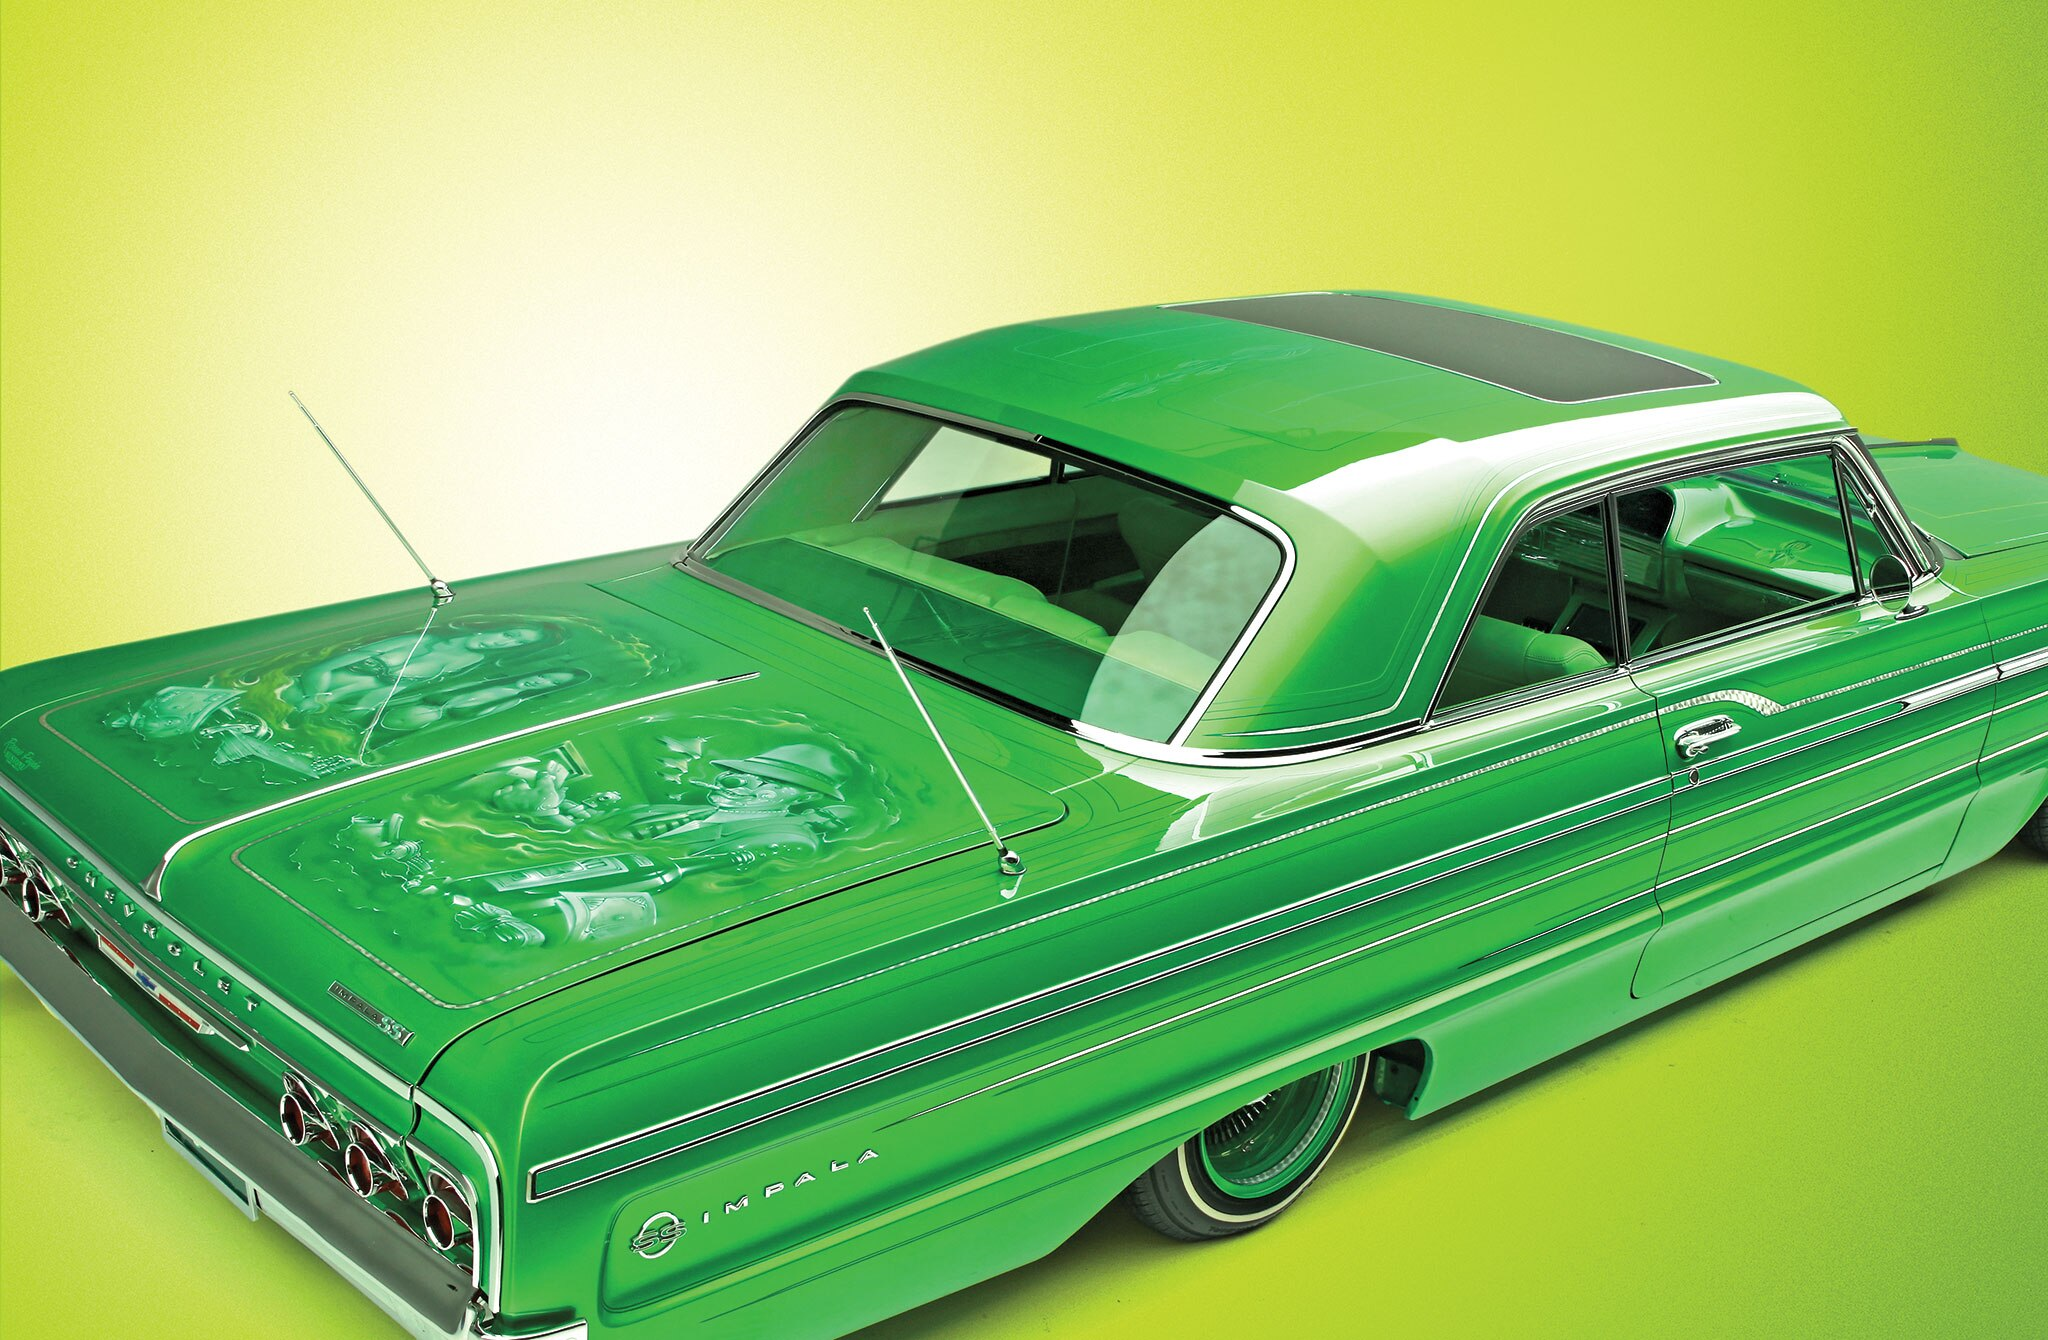 september-2014-editors-letter-candy-lime-green-impala1